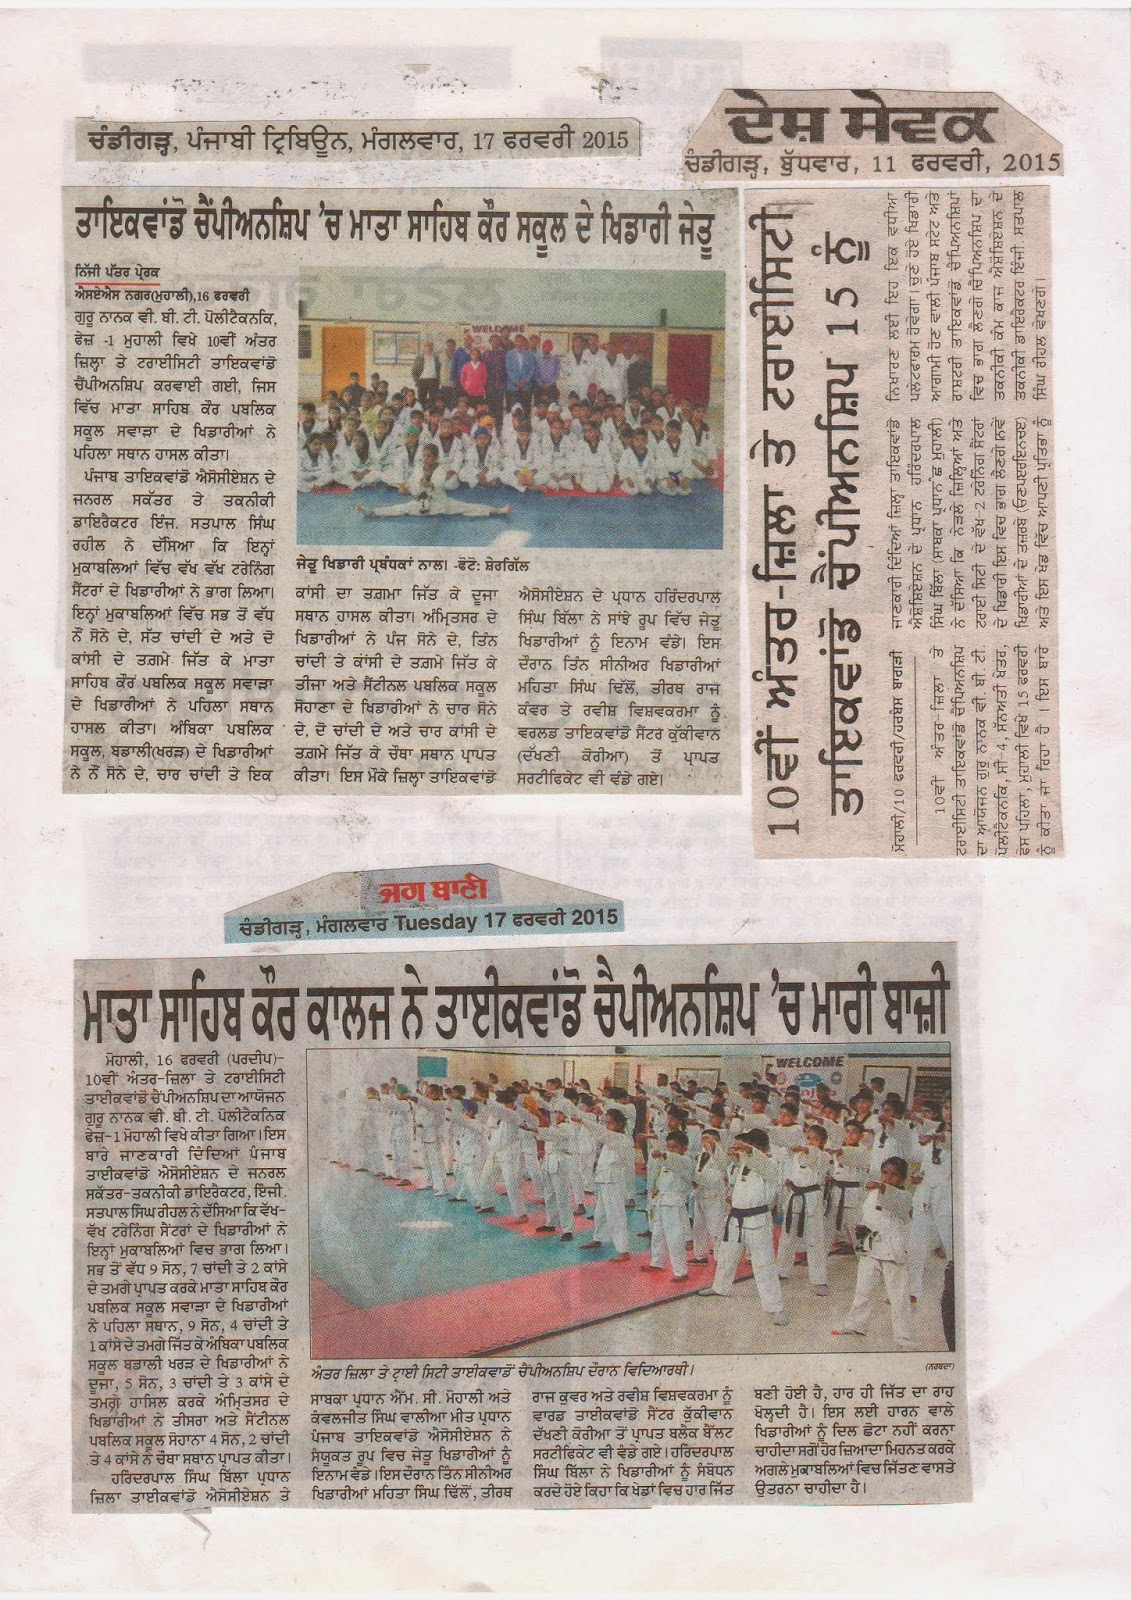 10th Inter-Dist & Tricity Taekwondo, Martial Arts, Tkd, Championships, Training, Classes, Coaching, Self-defence, Girls, Women, Safety, Fitness,  Mohali, SAS Nagar, near Chandigarh, Punjab, India, World, Shere, Lions, Videos, Movies, Master, Er. Satpal Singh Rehal, Rehal, Academy, Association, Federation, Clubs, Satpal Rehal, Korean Judo Karate, Chandigarh, Reiki, Healing, Kot Maira, Garhshankar, Hoshiarpur, Jalandhar, Amritsar, Patiala, Mansa, Ludhiana, Ferozepur, Sangrur, Moga, Pathankot, Gurdaspur, Barnala, Nawanshahar, Ropar, Ajitgarh, Fatehgarh Sahib, Taran Taran, Patti, Faridkot, Winners, Medal Ceremony, Chief Guest, TAP, PTA, Grandmaster, Reiki, TFI, Jimmy R Jagtiani, Lucknow, School, Games, Players